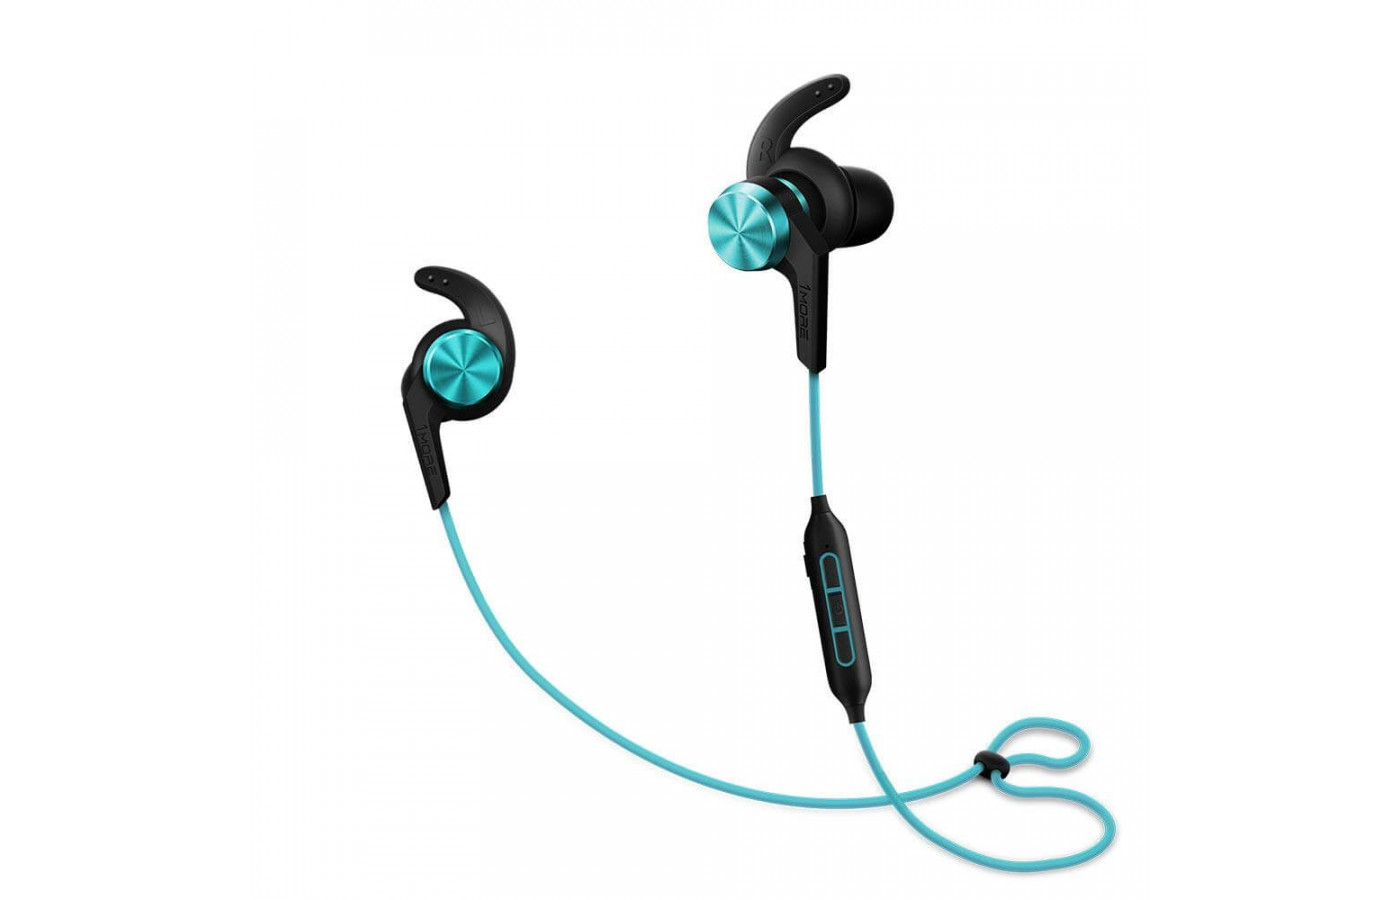 1MORE iBFree in-Ear Earphones Wireless Sport Headphones Bluetooth CSR, IPX 4 Waterproof, Secure Fit in-Line Remote Gym Running Workout